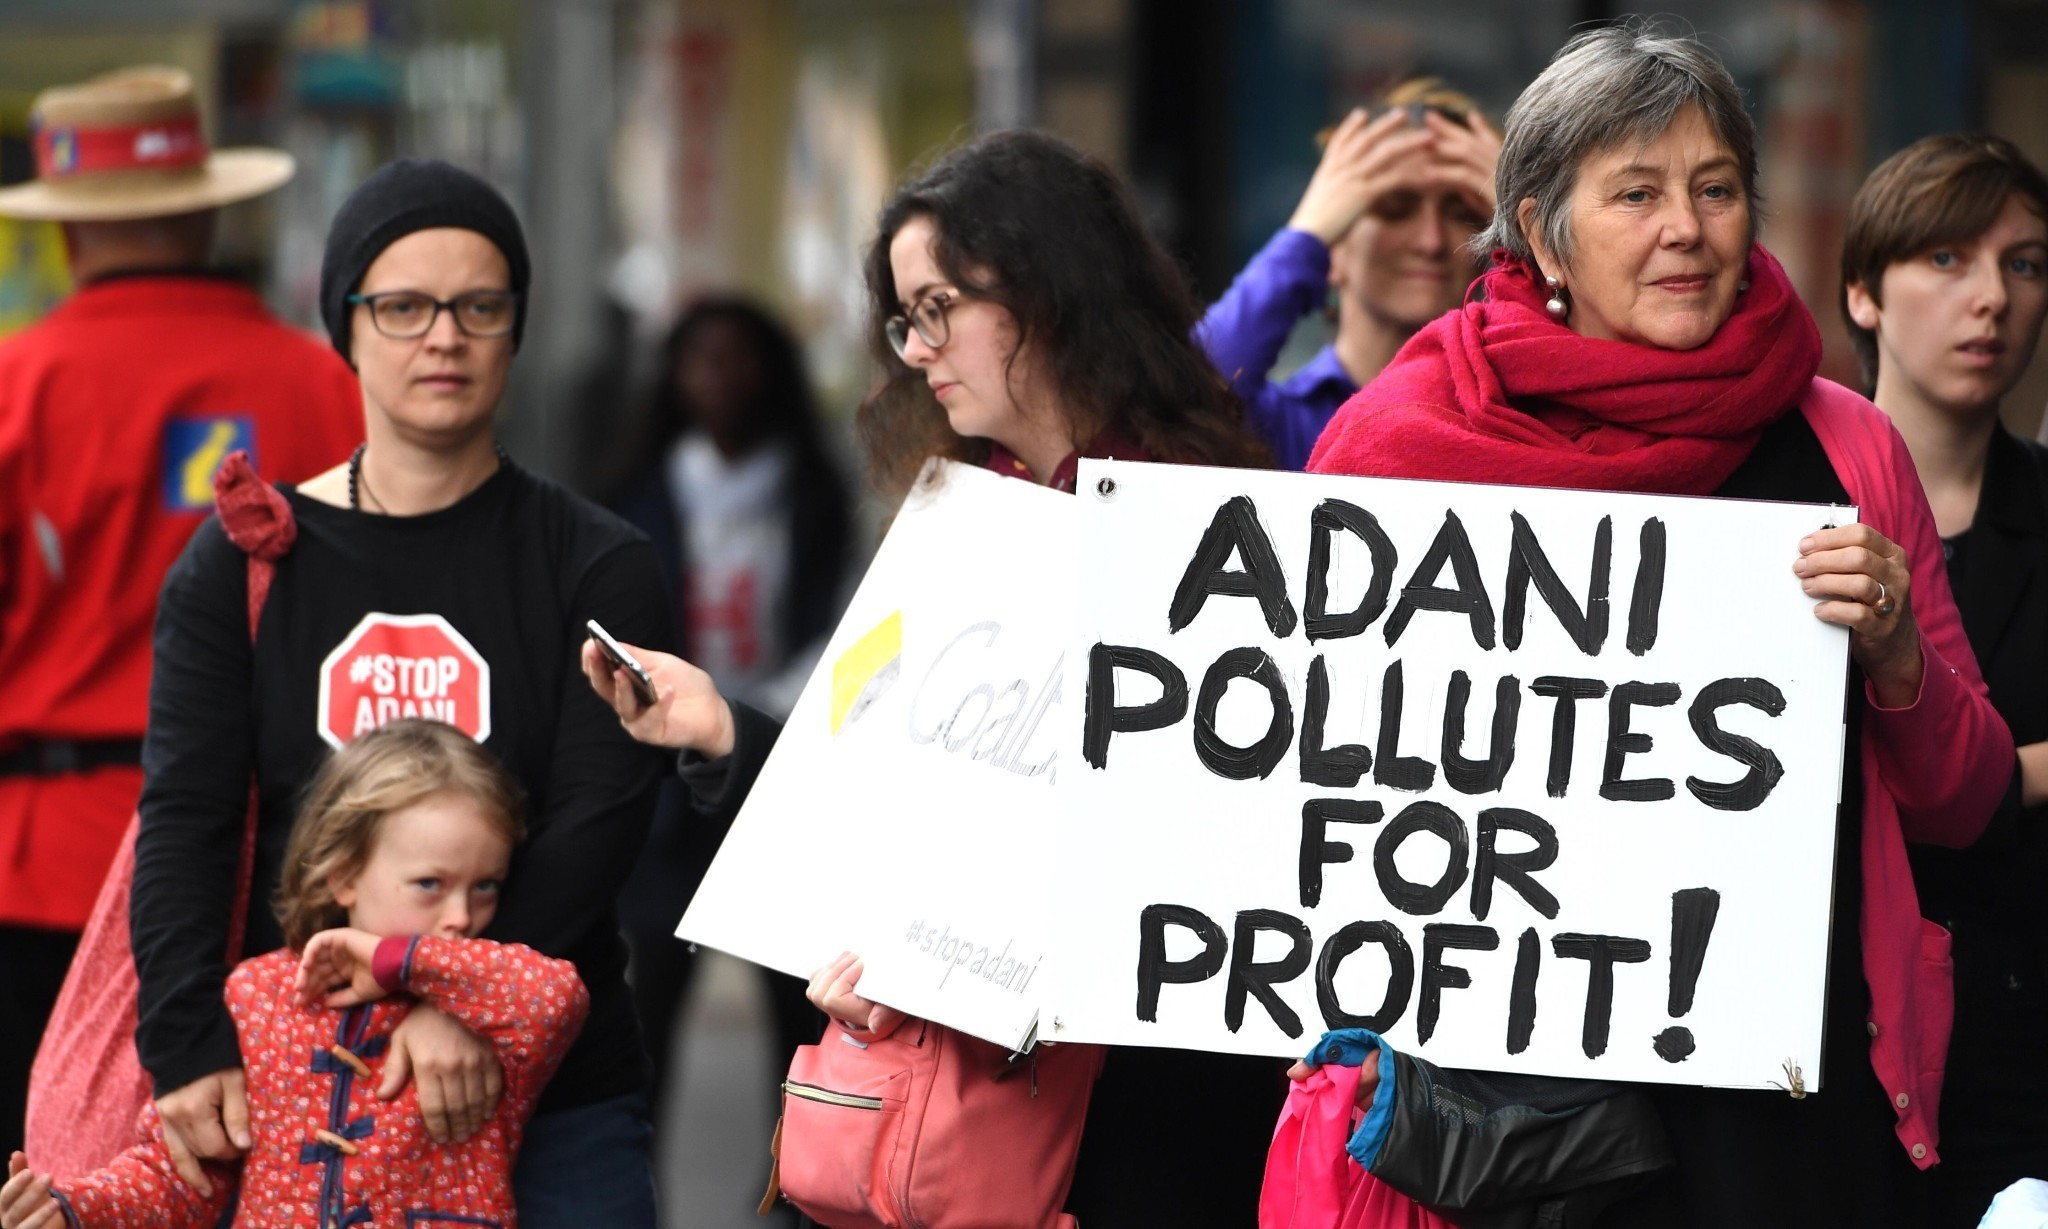 Indian opposition calls for investigation into Adani over financial fraud allegations